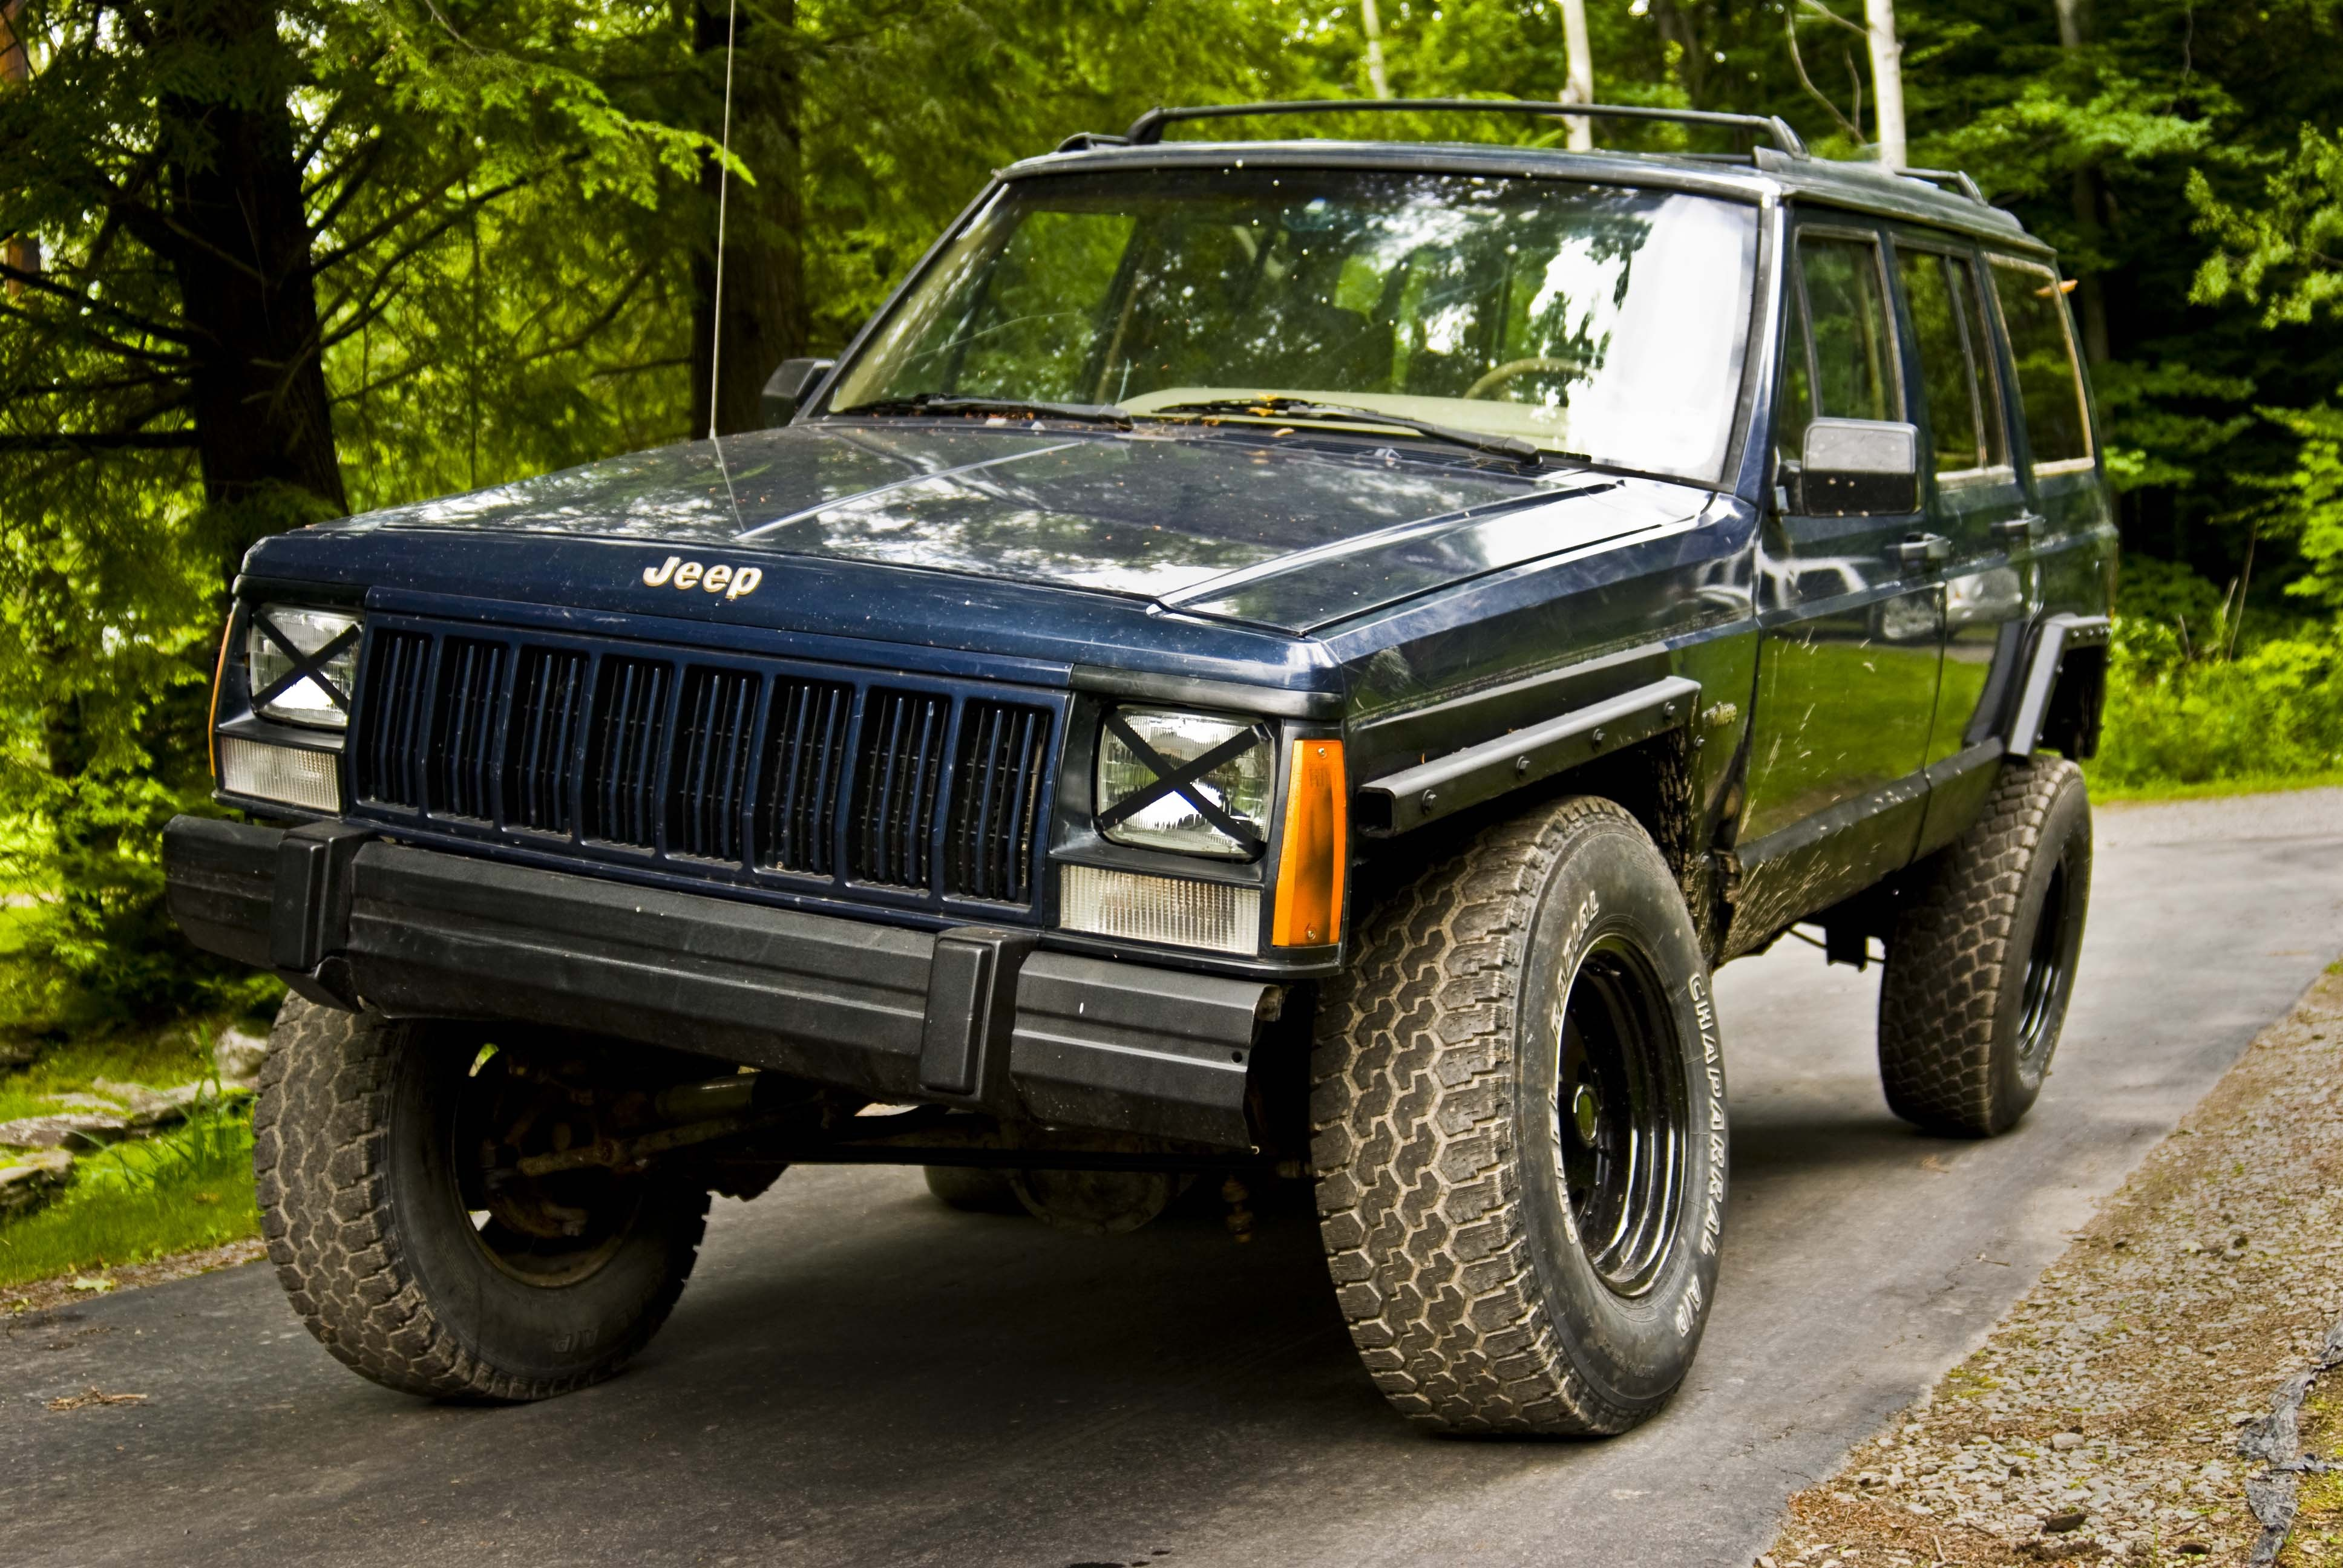 stage3nate's 1993 Jeep Cherokee